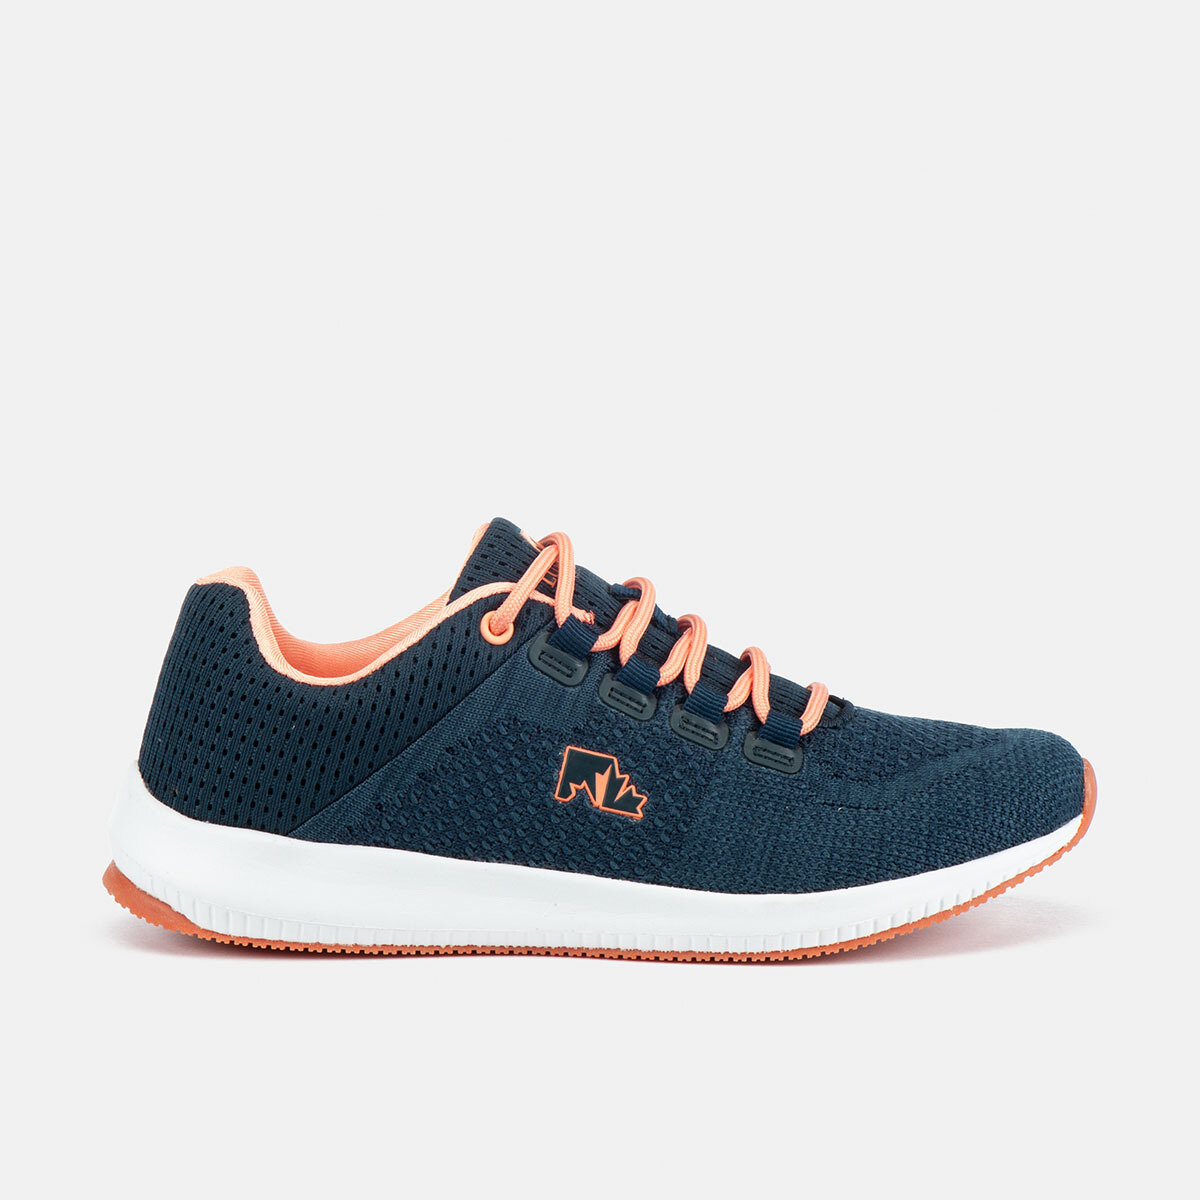 ALLE BLUE/ORANGE Woman Running shoes